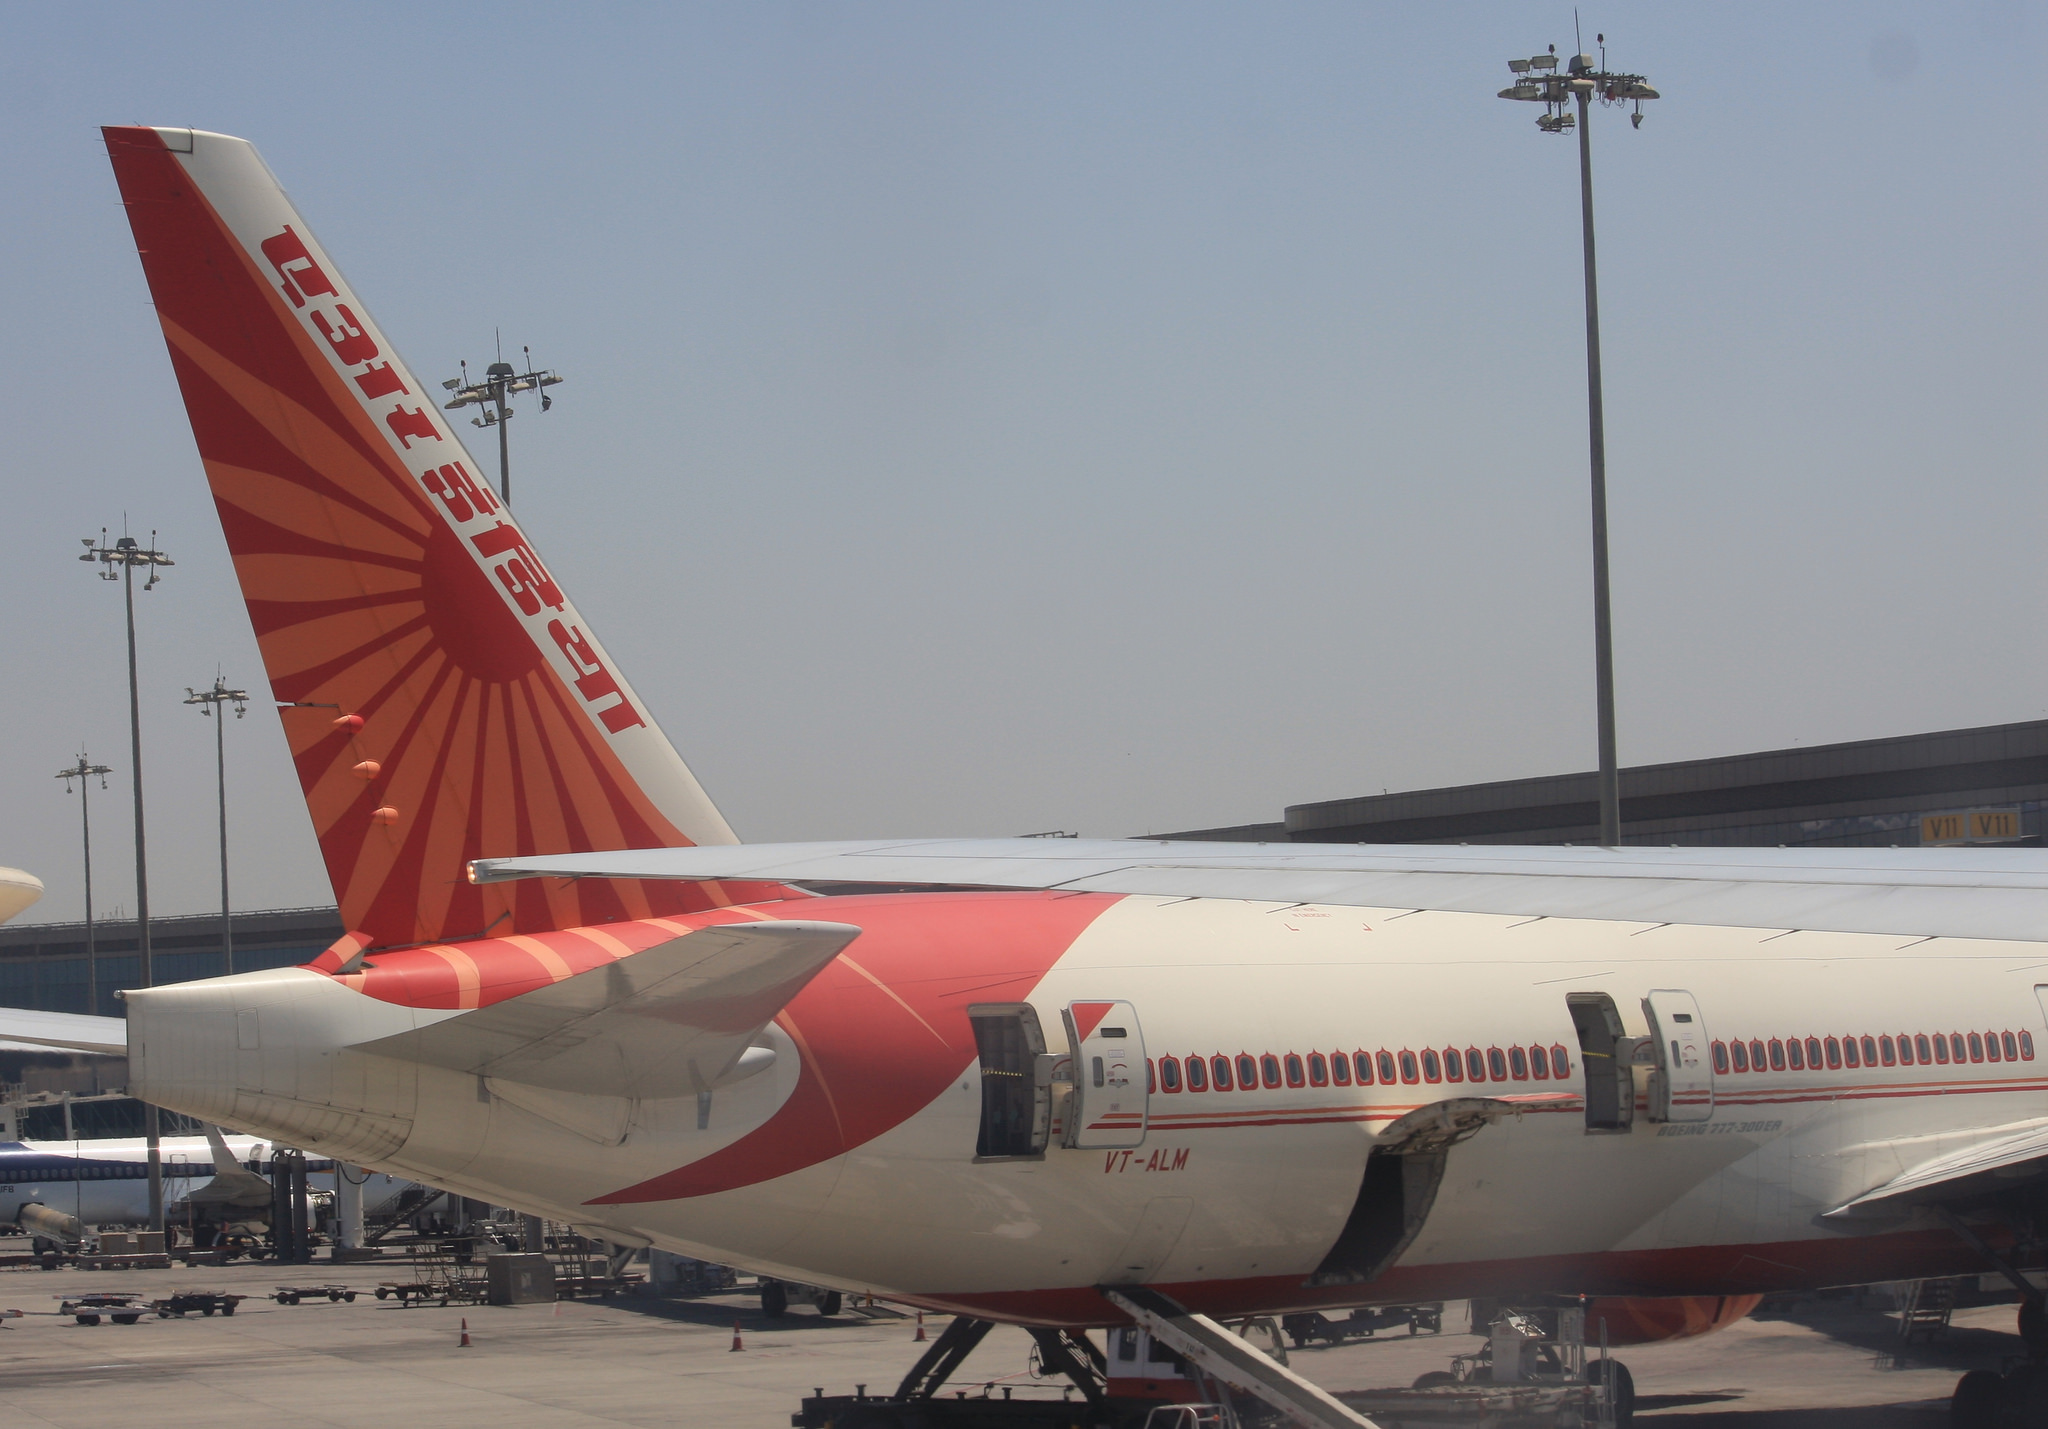 Air India Flight Attendant Reportedly Falls from Open Door of Boeing 777, Suffers Serious Injuries